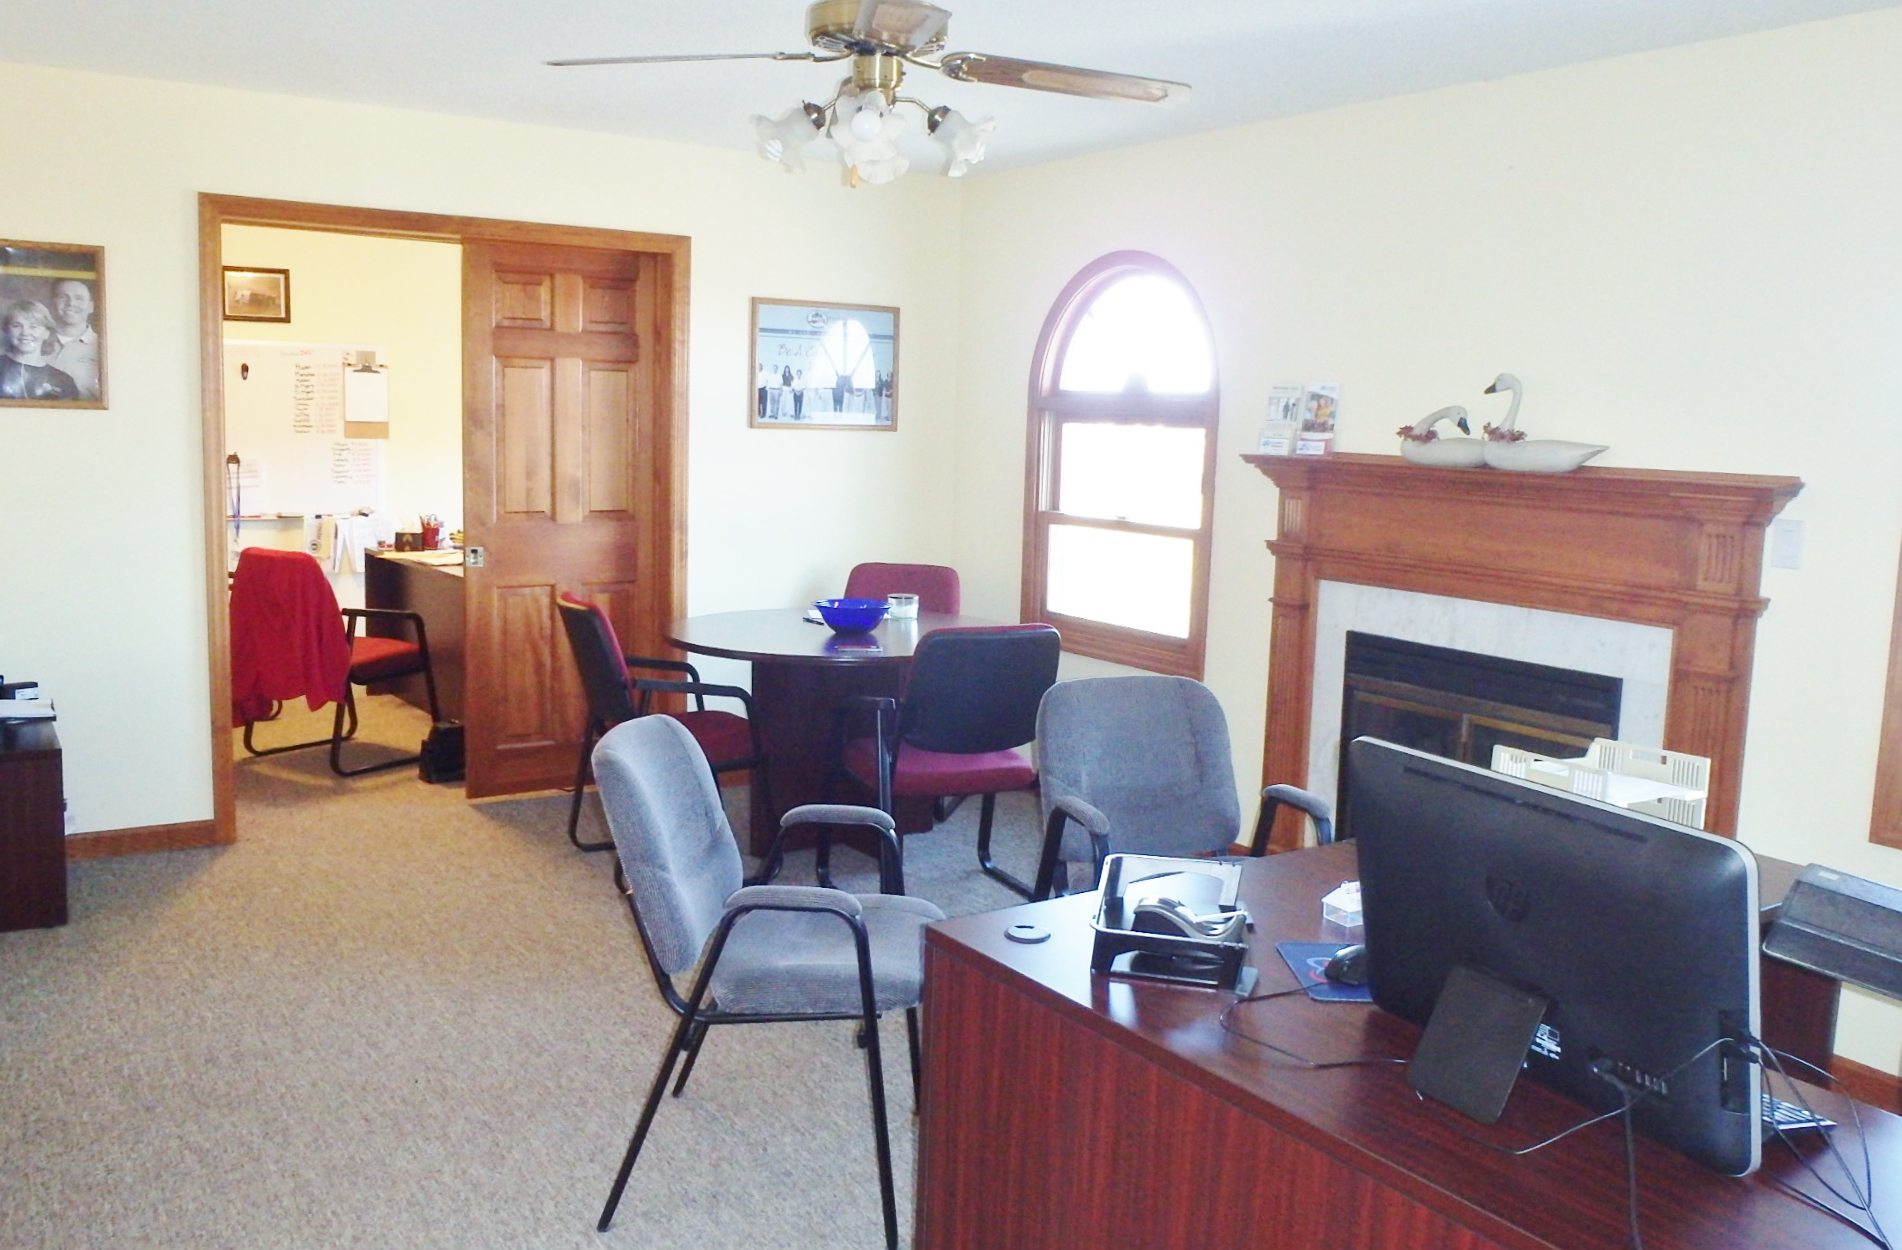 915 Benner Pike Offices